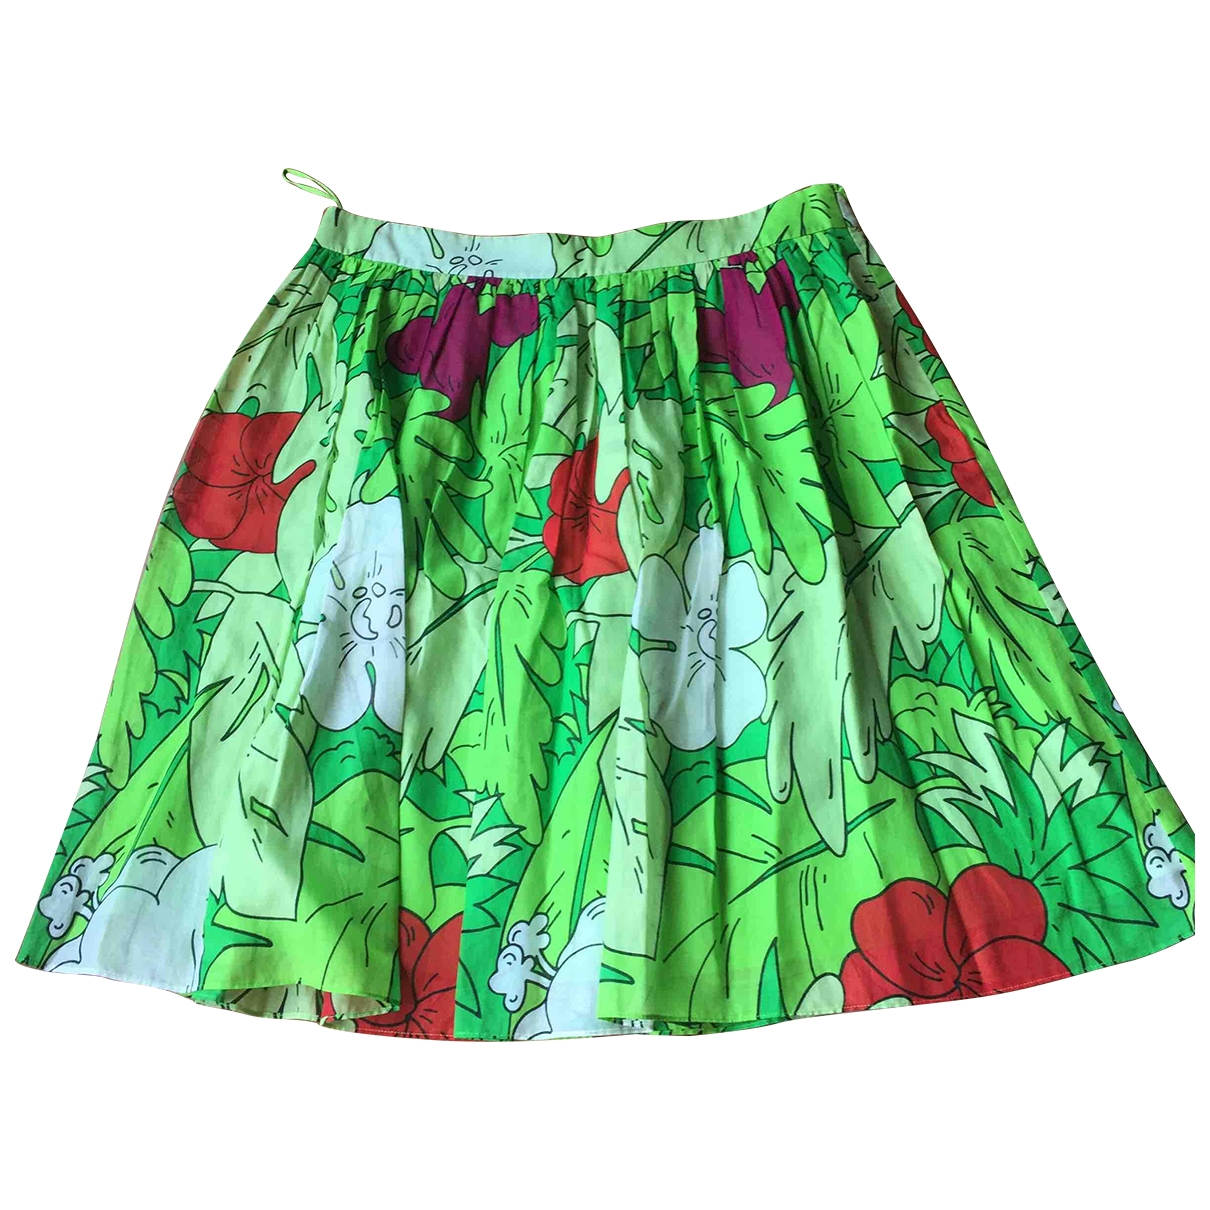 Moschino Cheap And Chic \N Cotton skirt for Women 44 IT